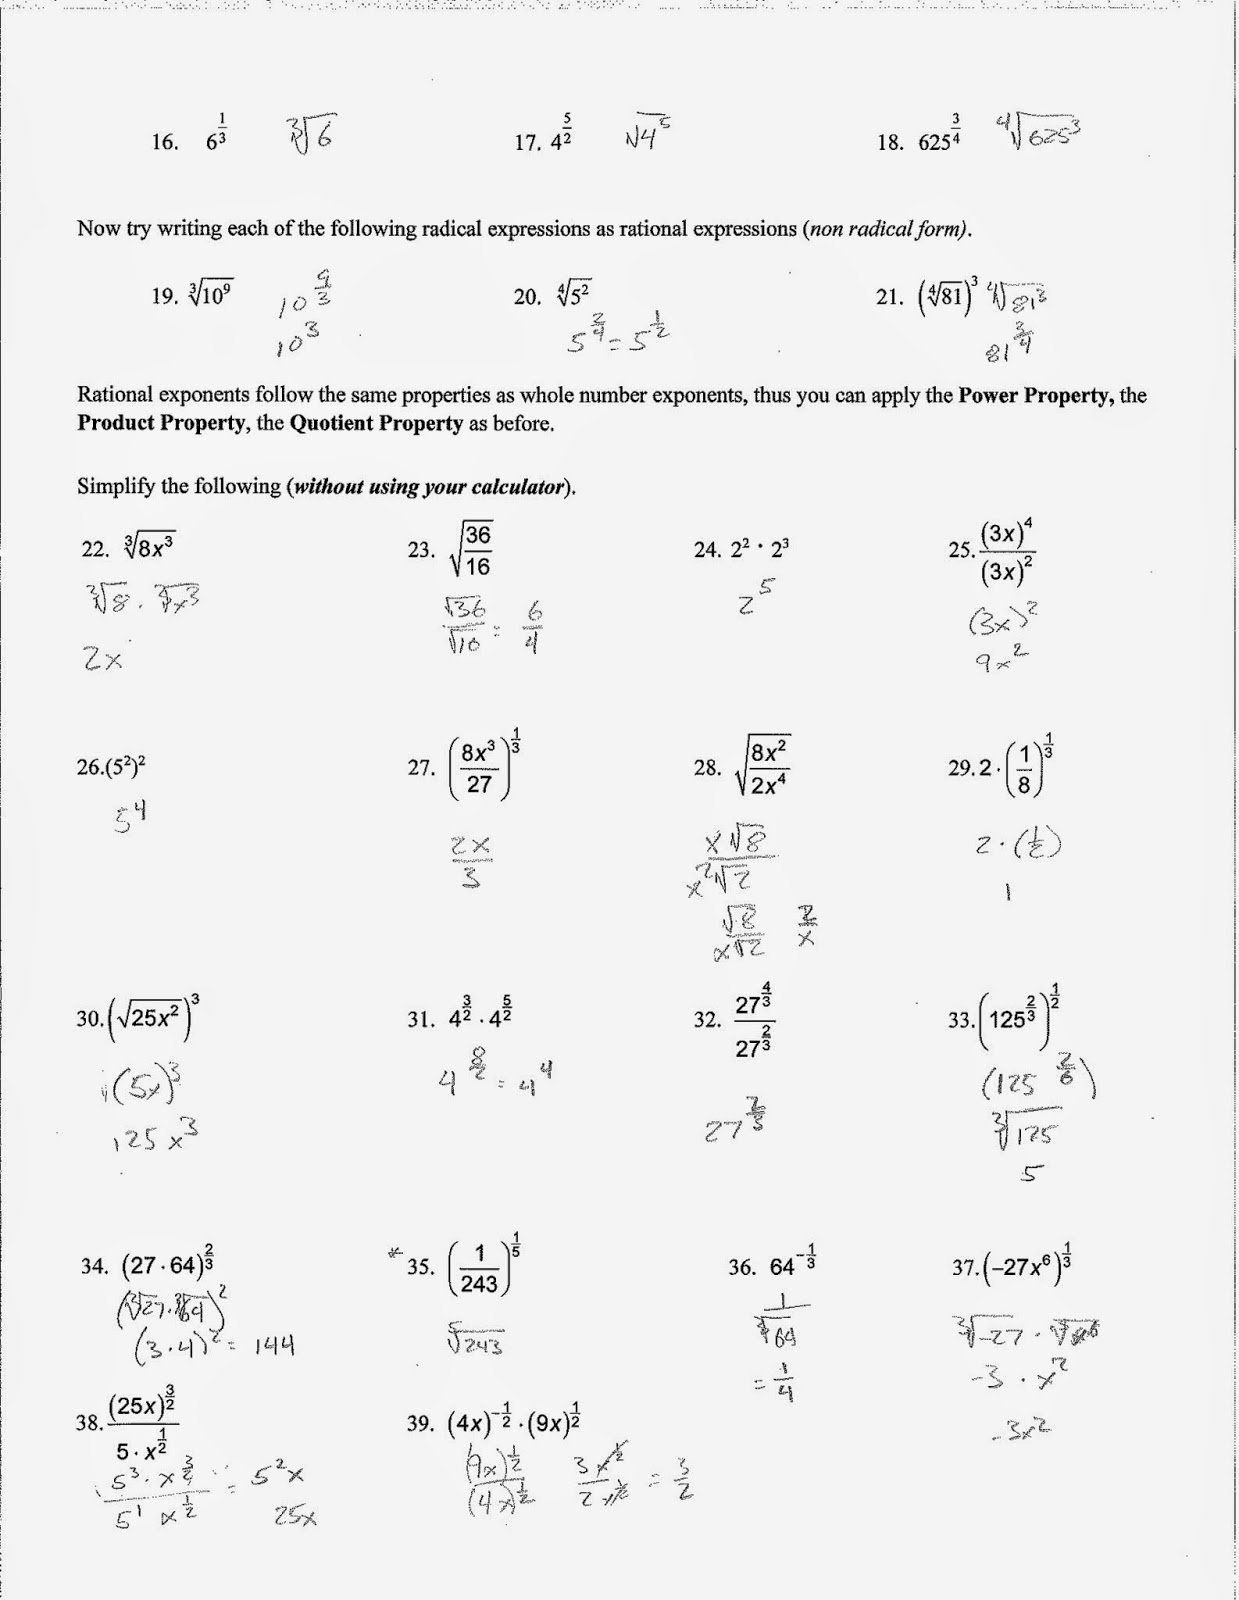 Radicals and Rational Exponents Worksheet Best Of Radicals and Rational Exponents Worksheet Unique Simplifying